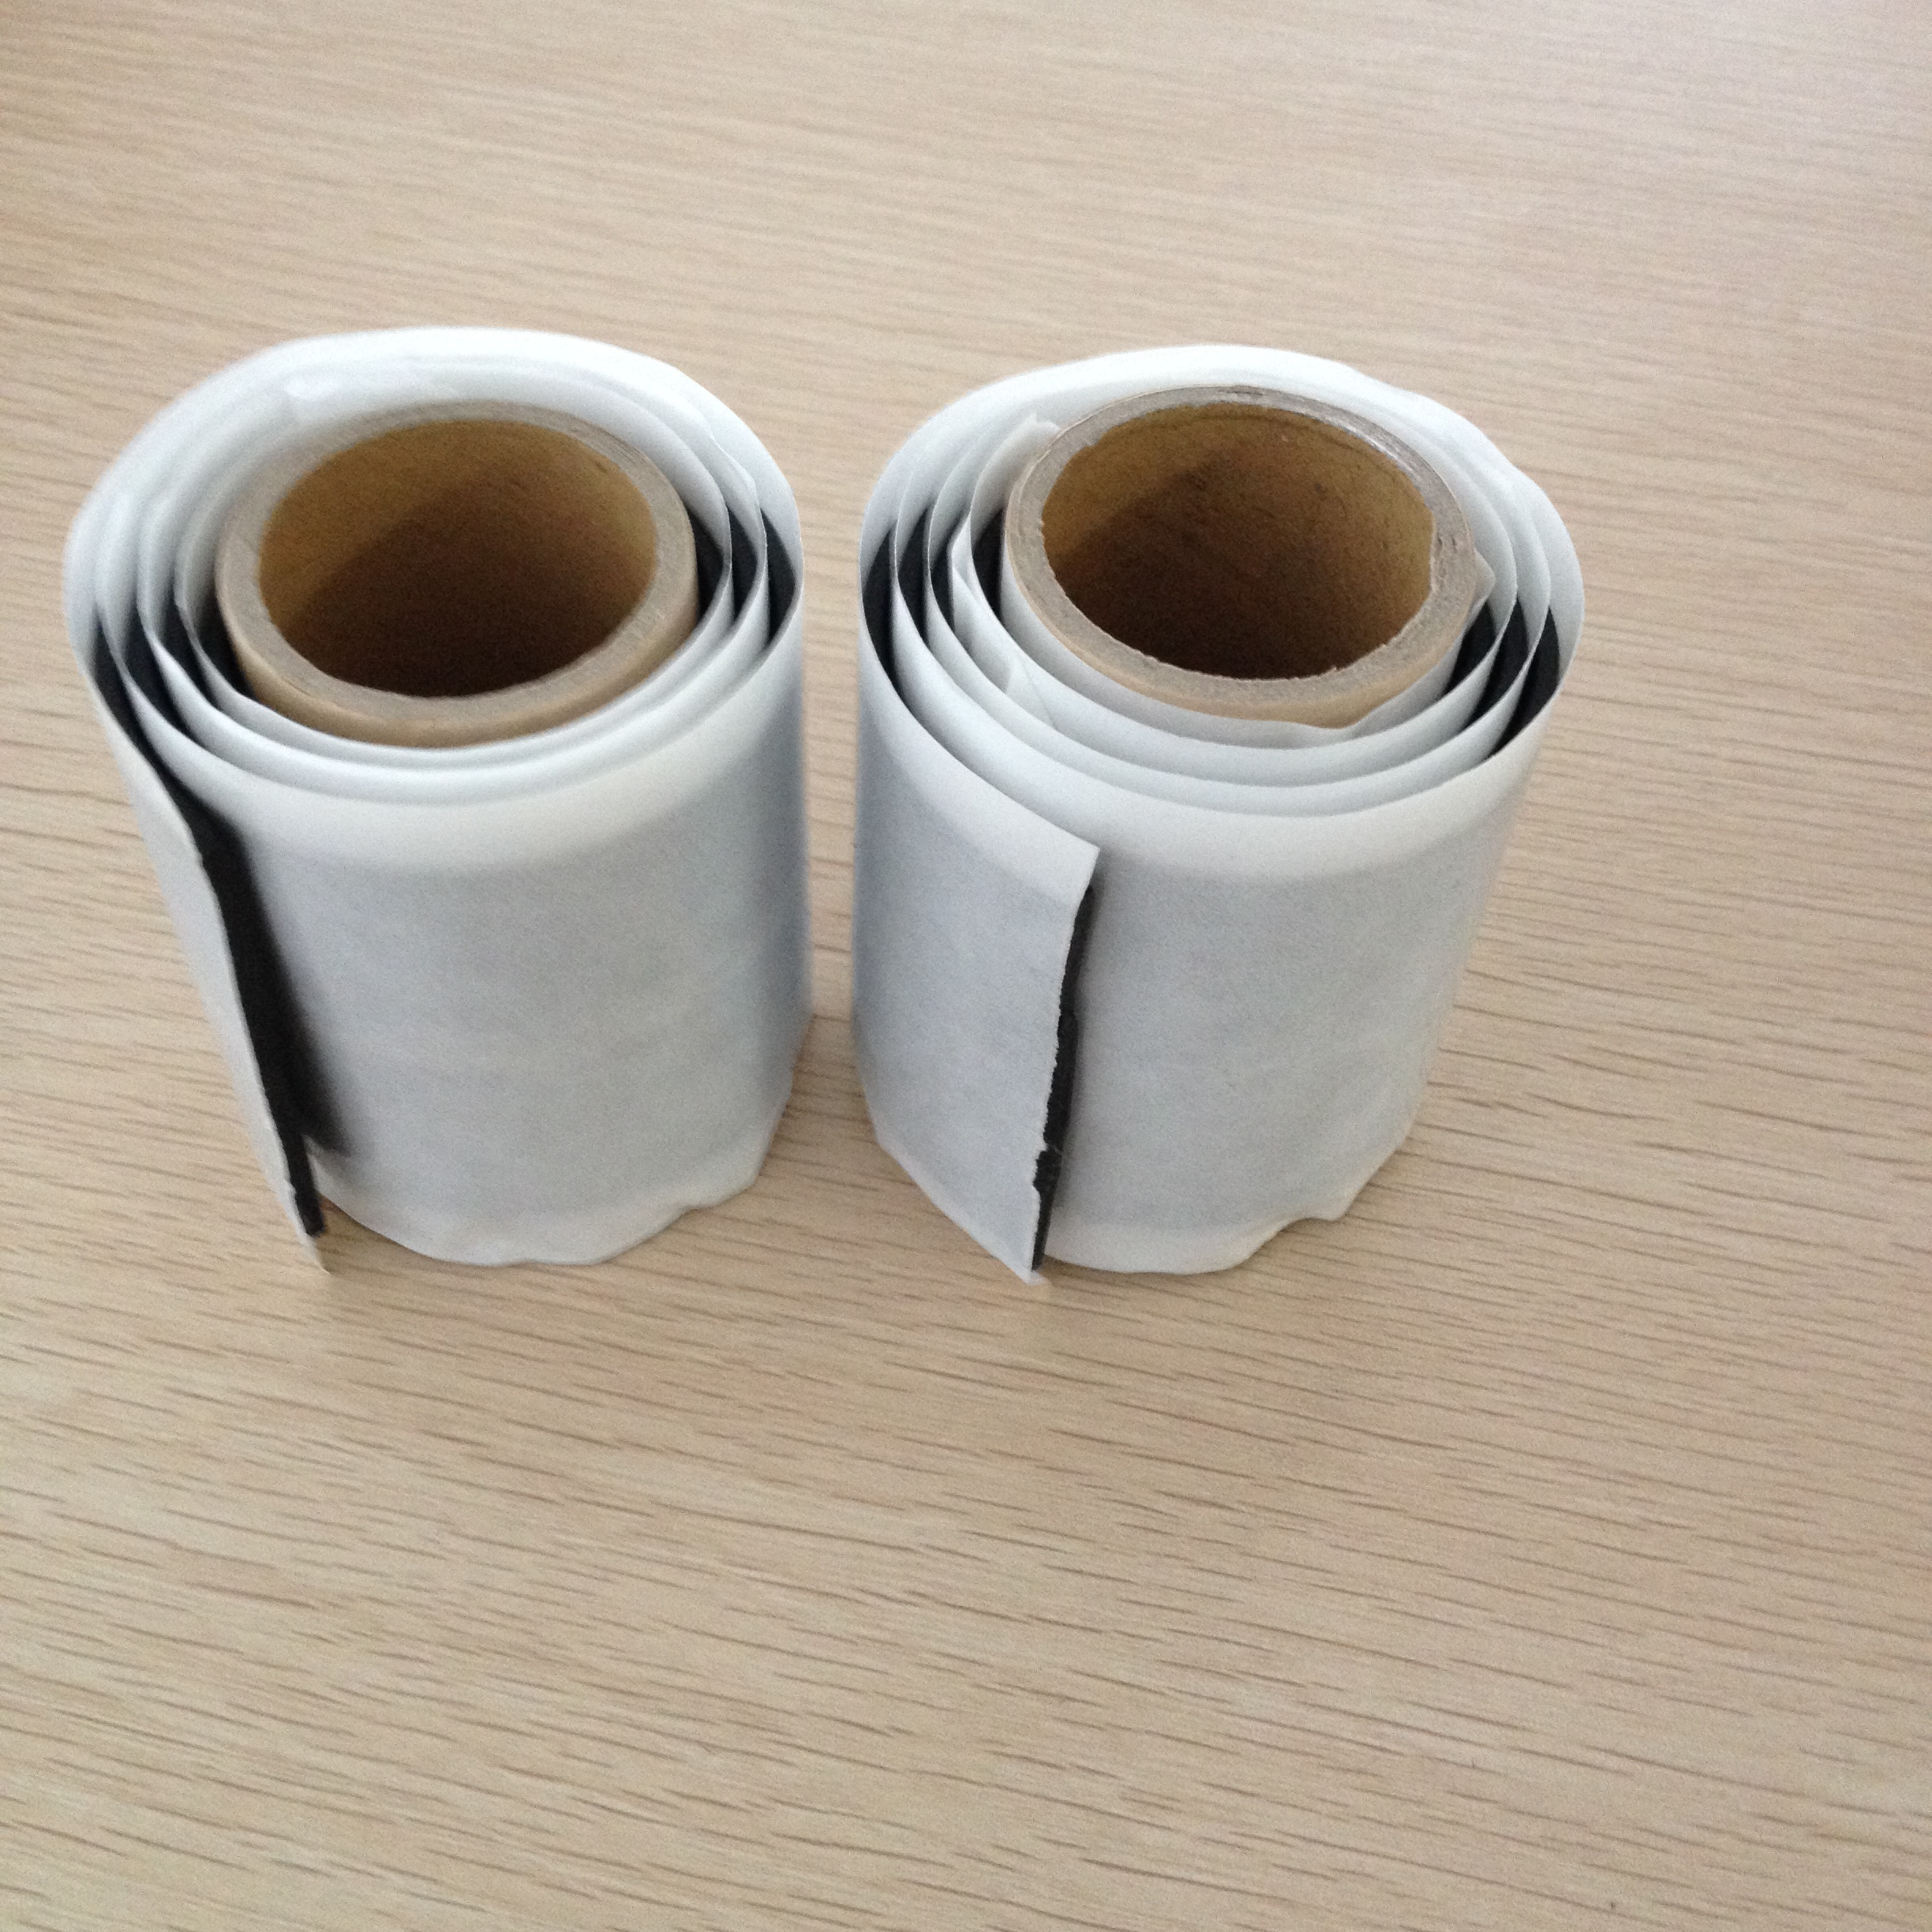 butyl rubber tape